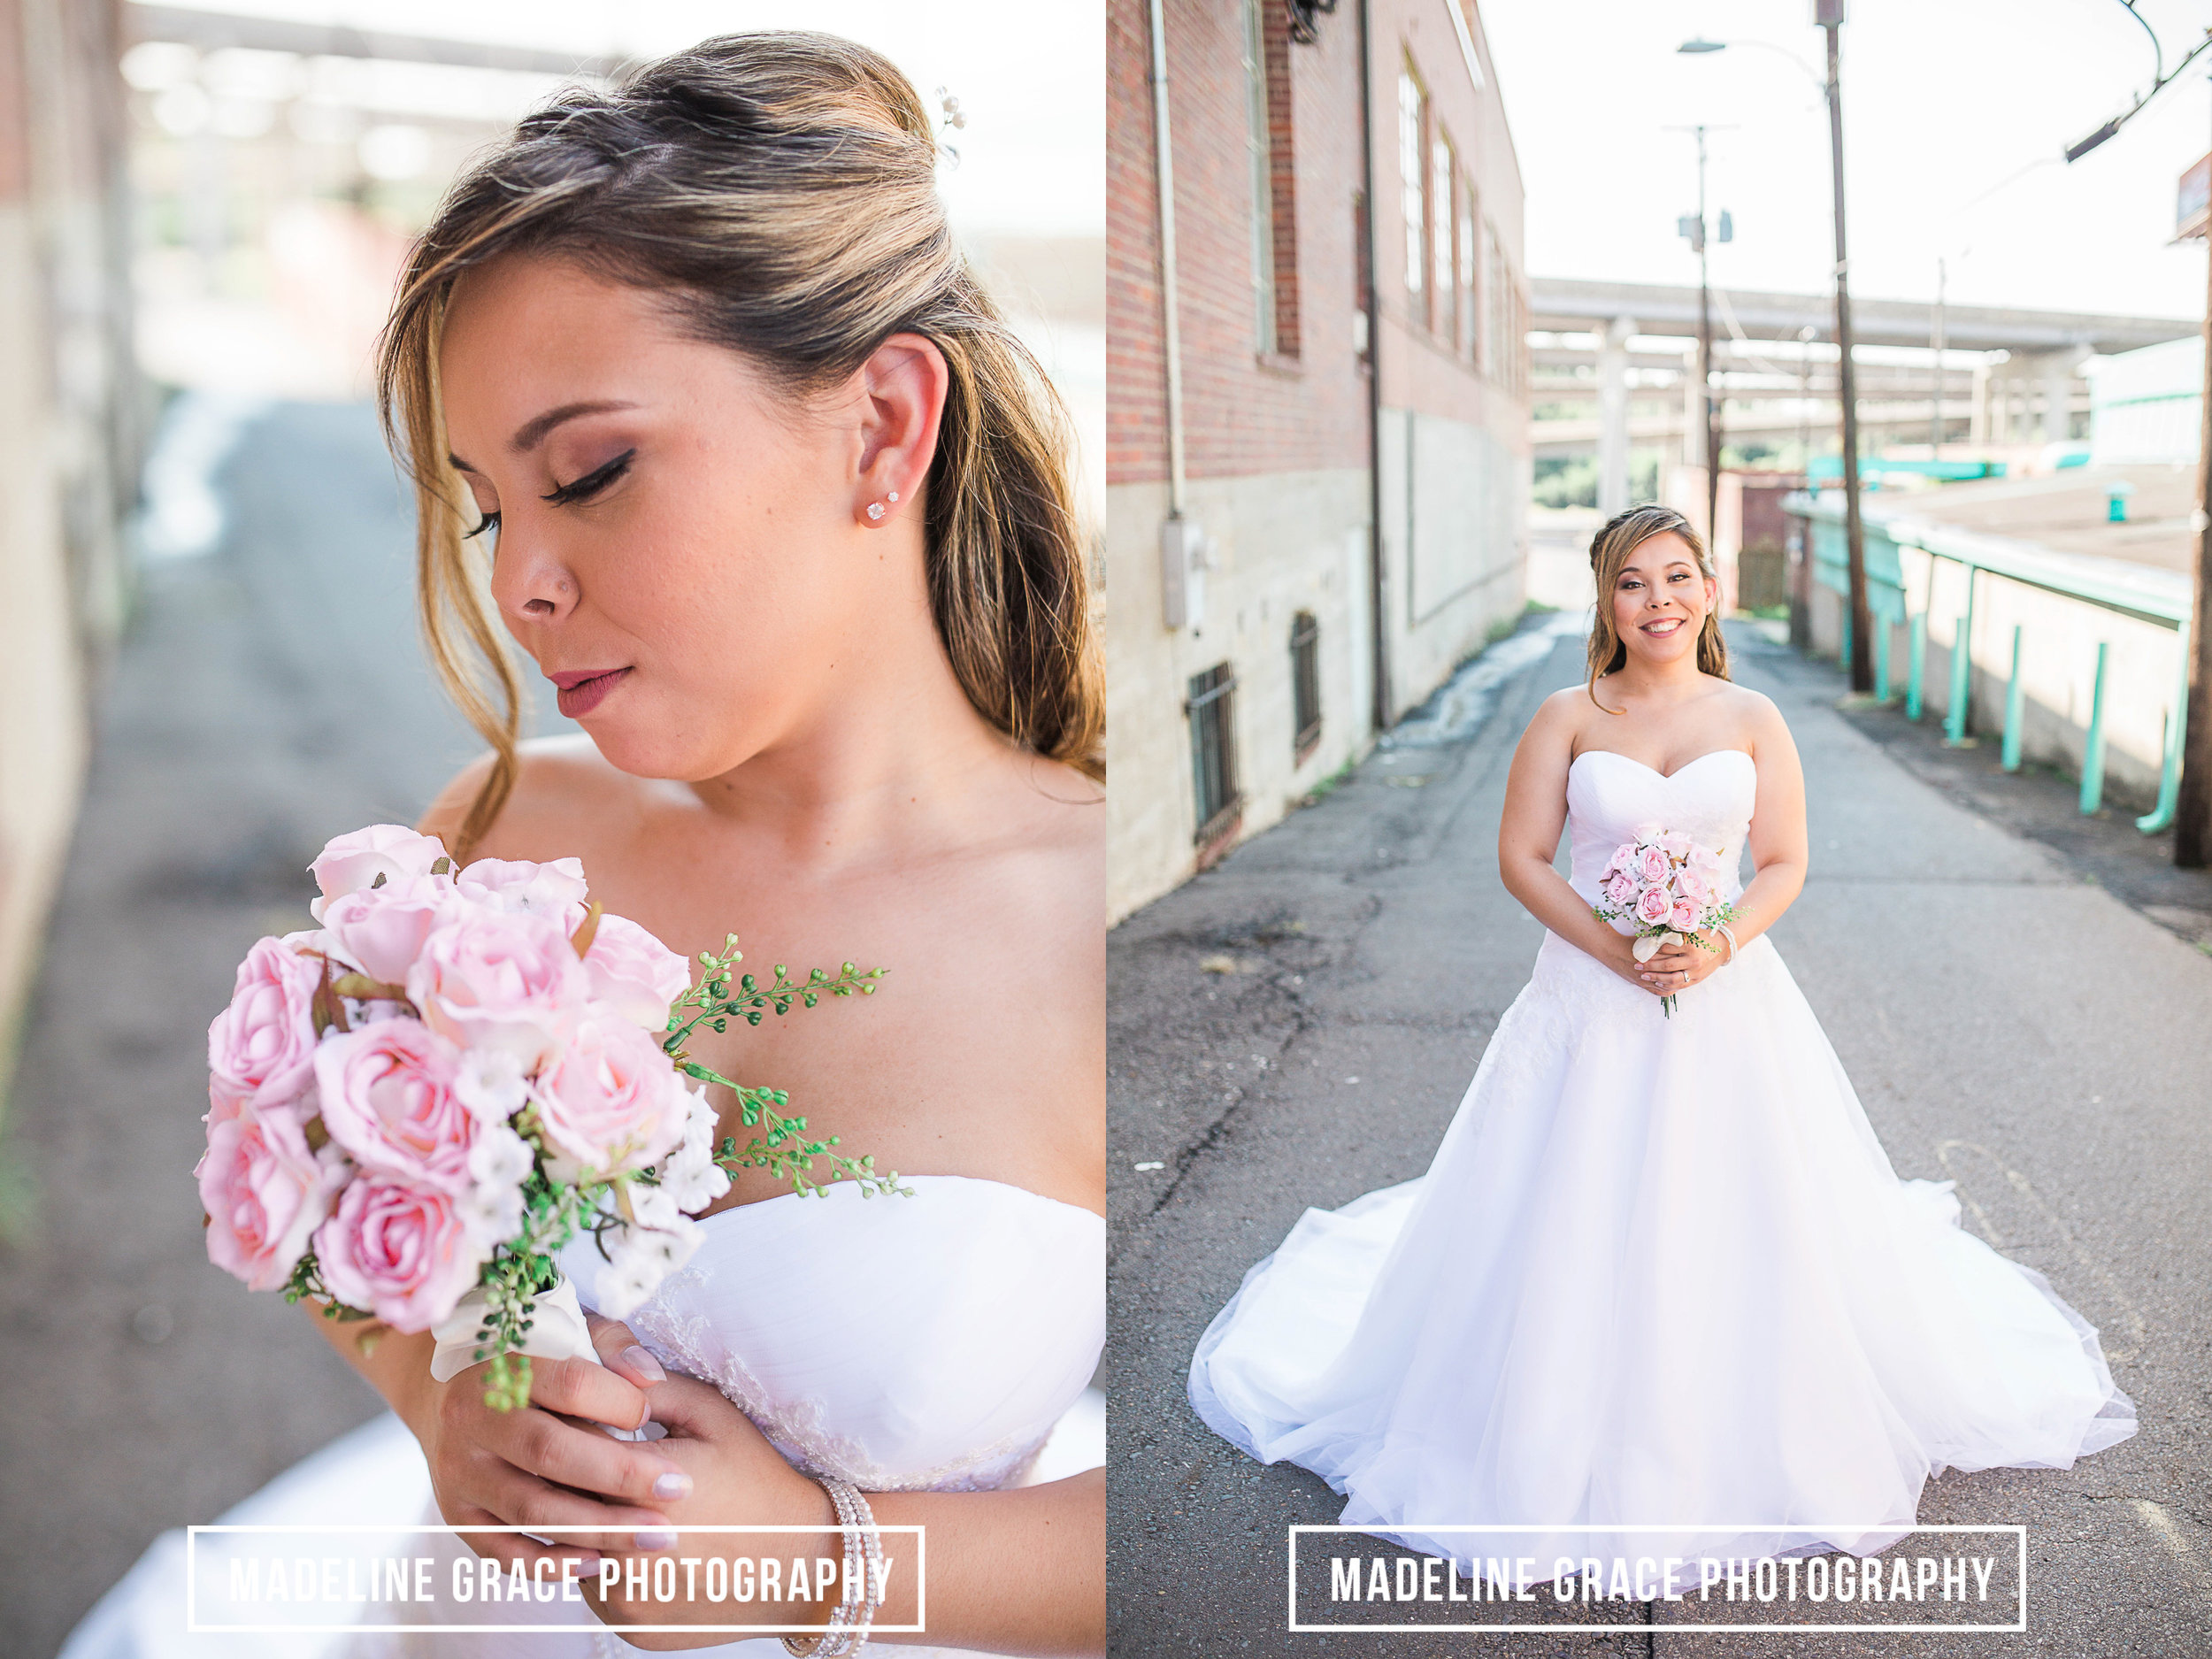 MGP-Sarah-Bridals-Blog-8 copy.jpg